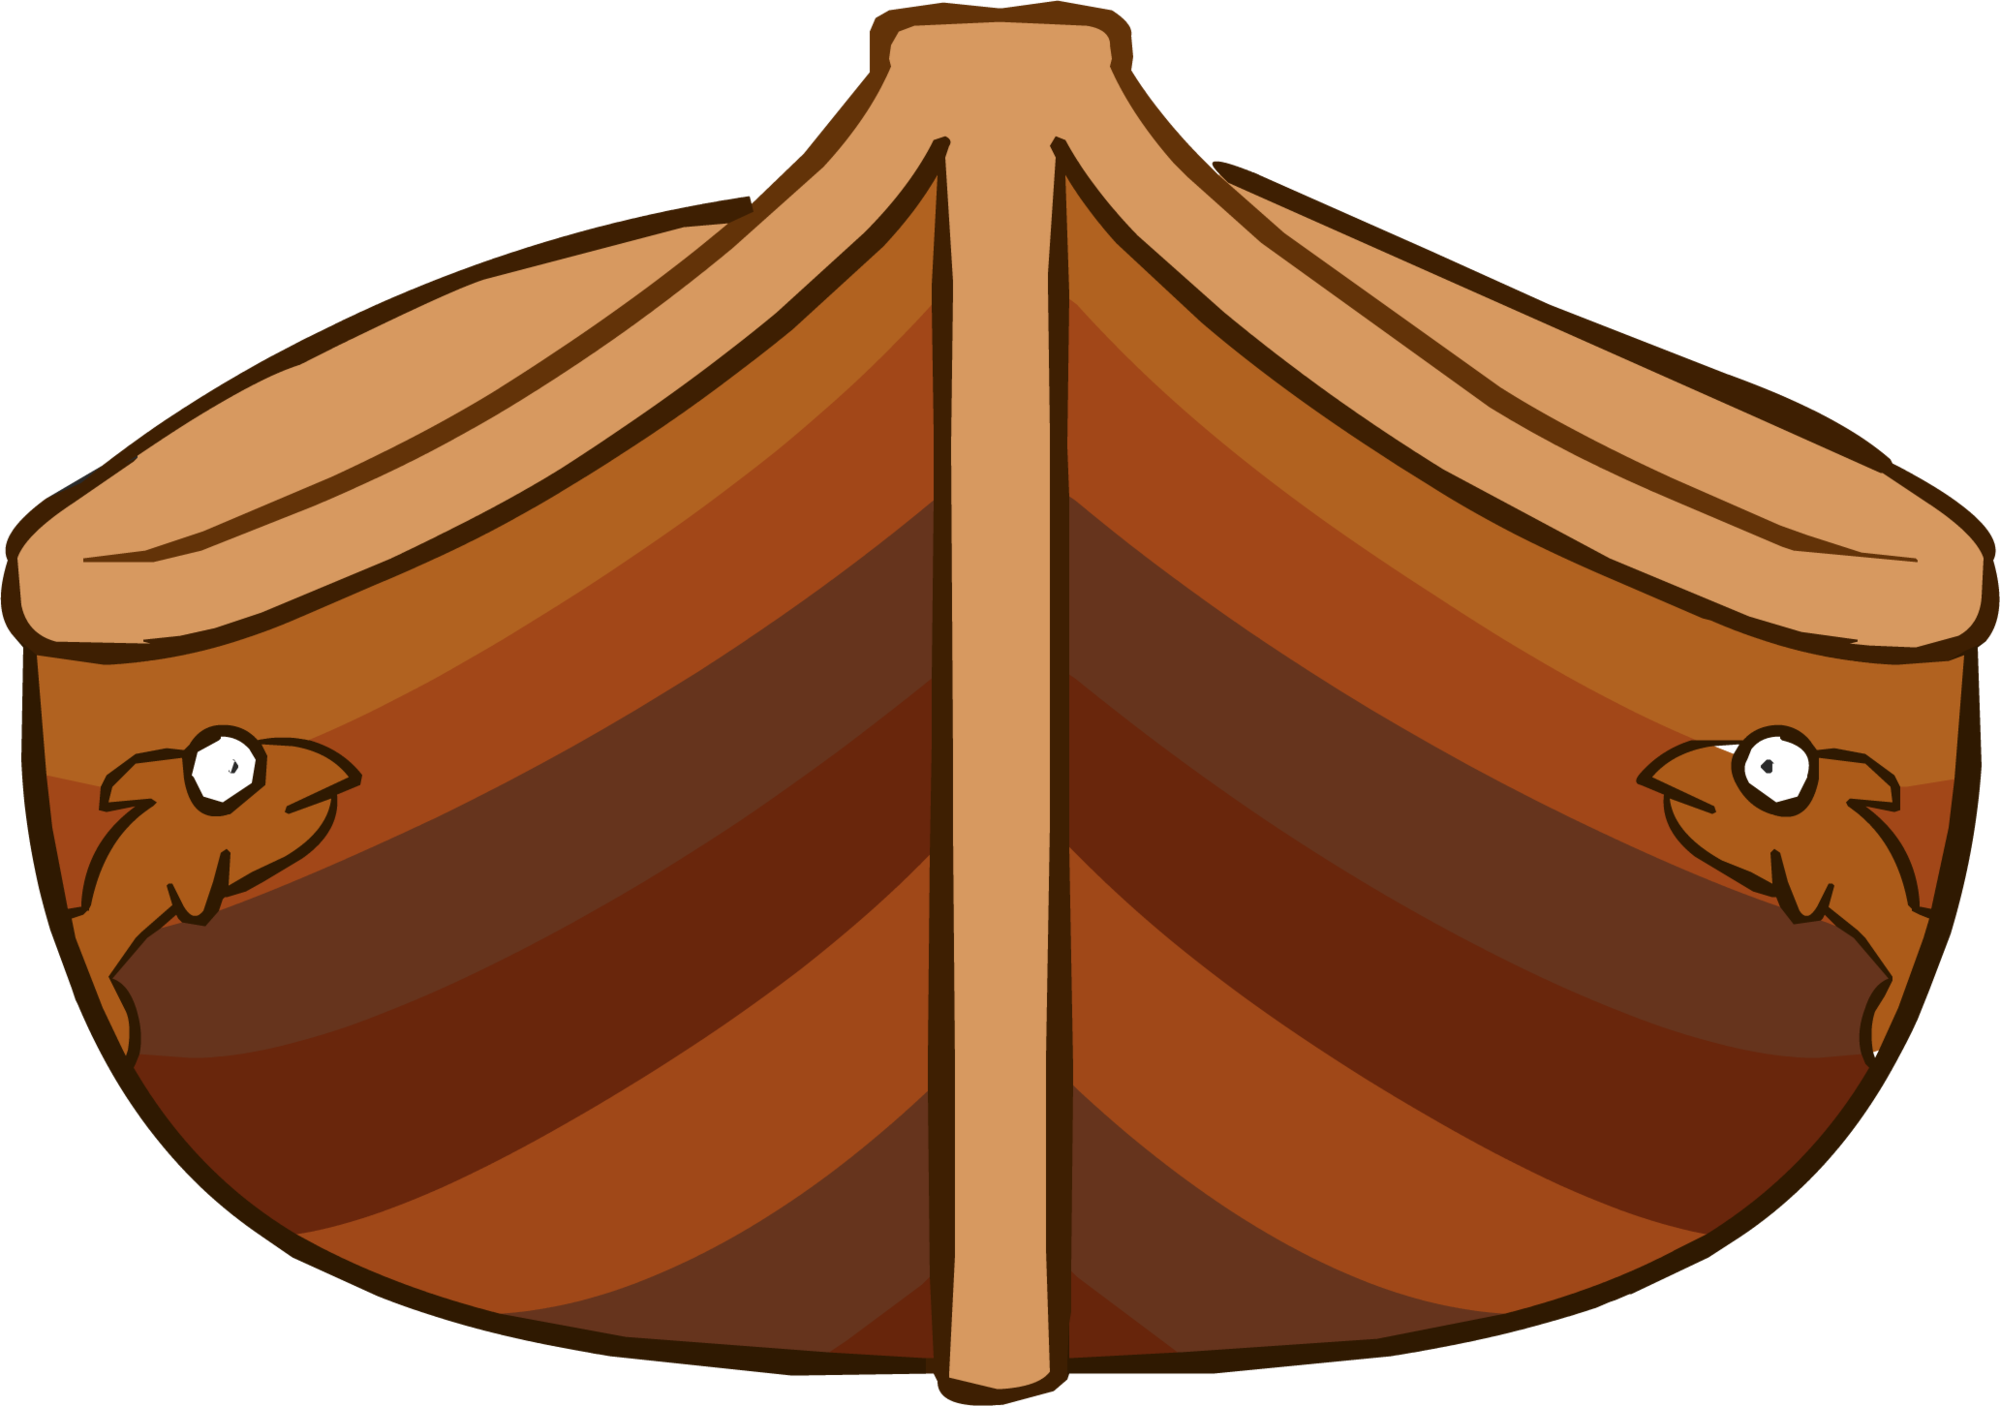 Clipart tent medieval tent. Wooden canoe club penguin